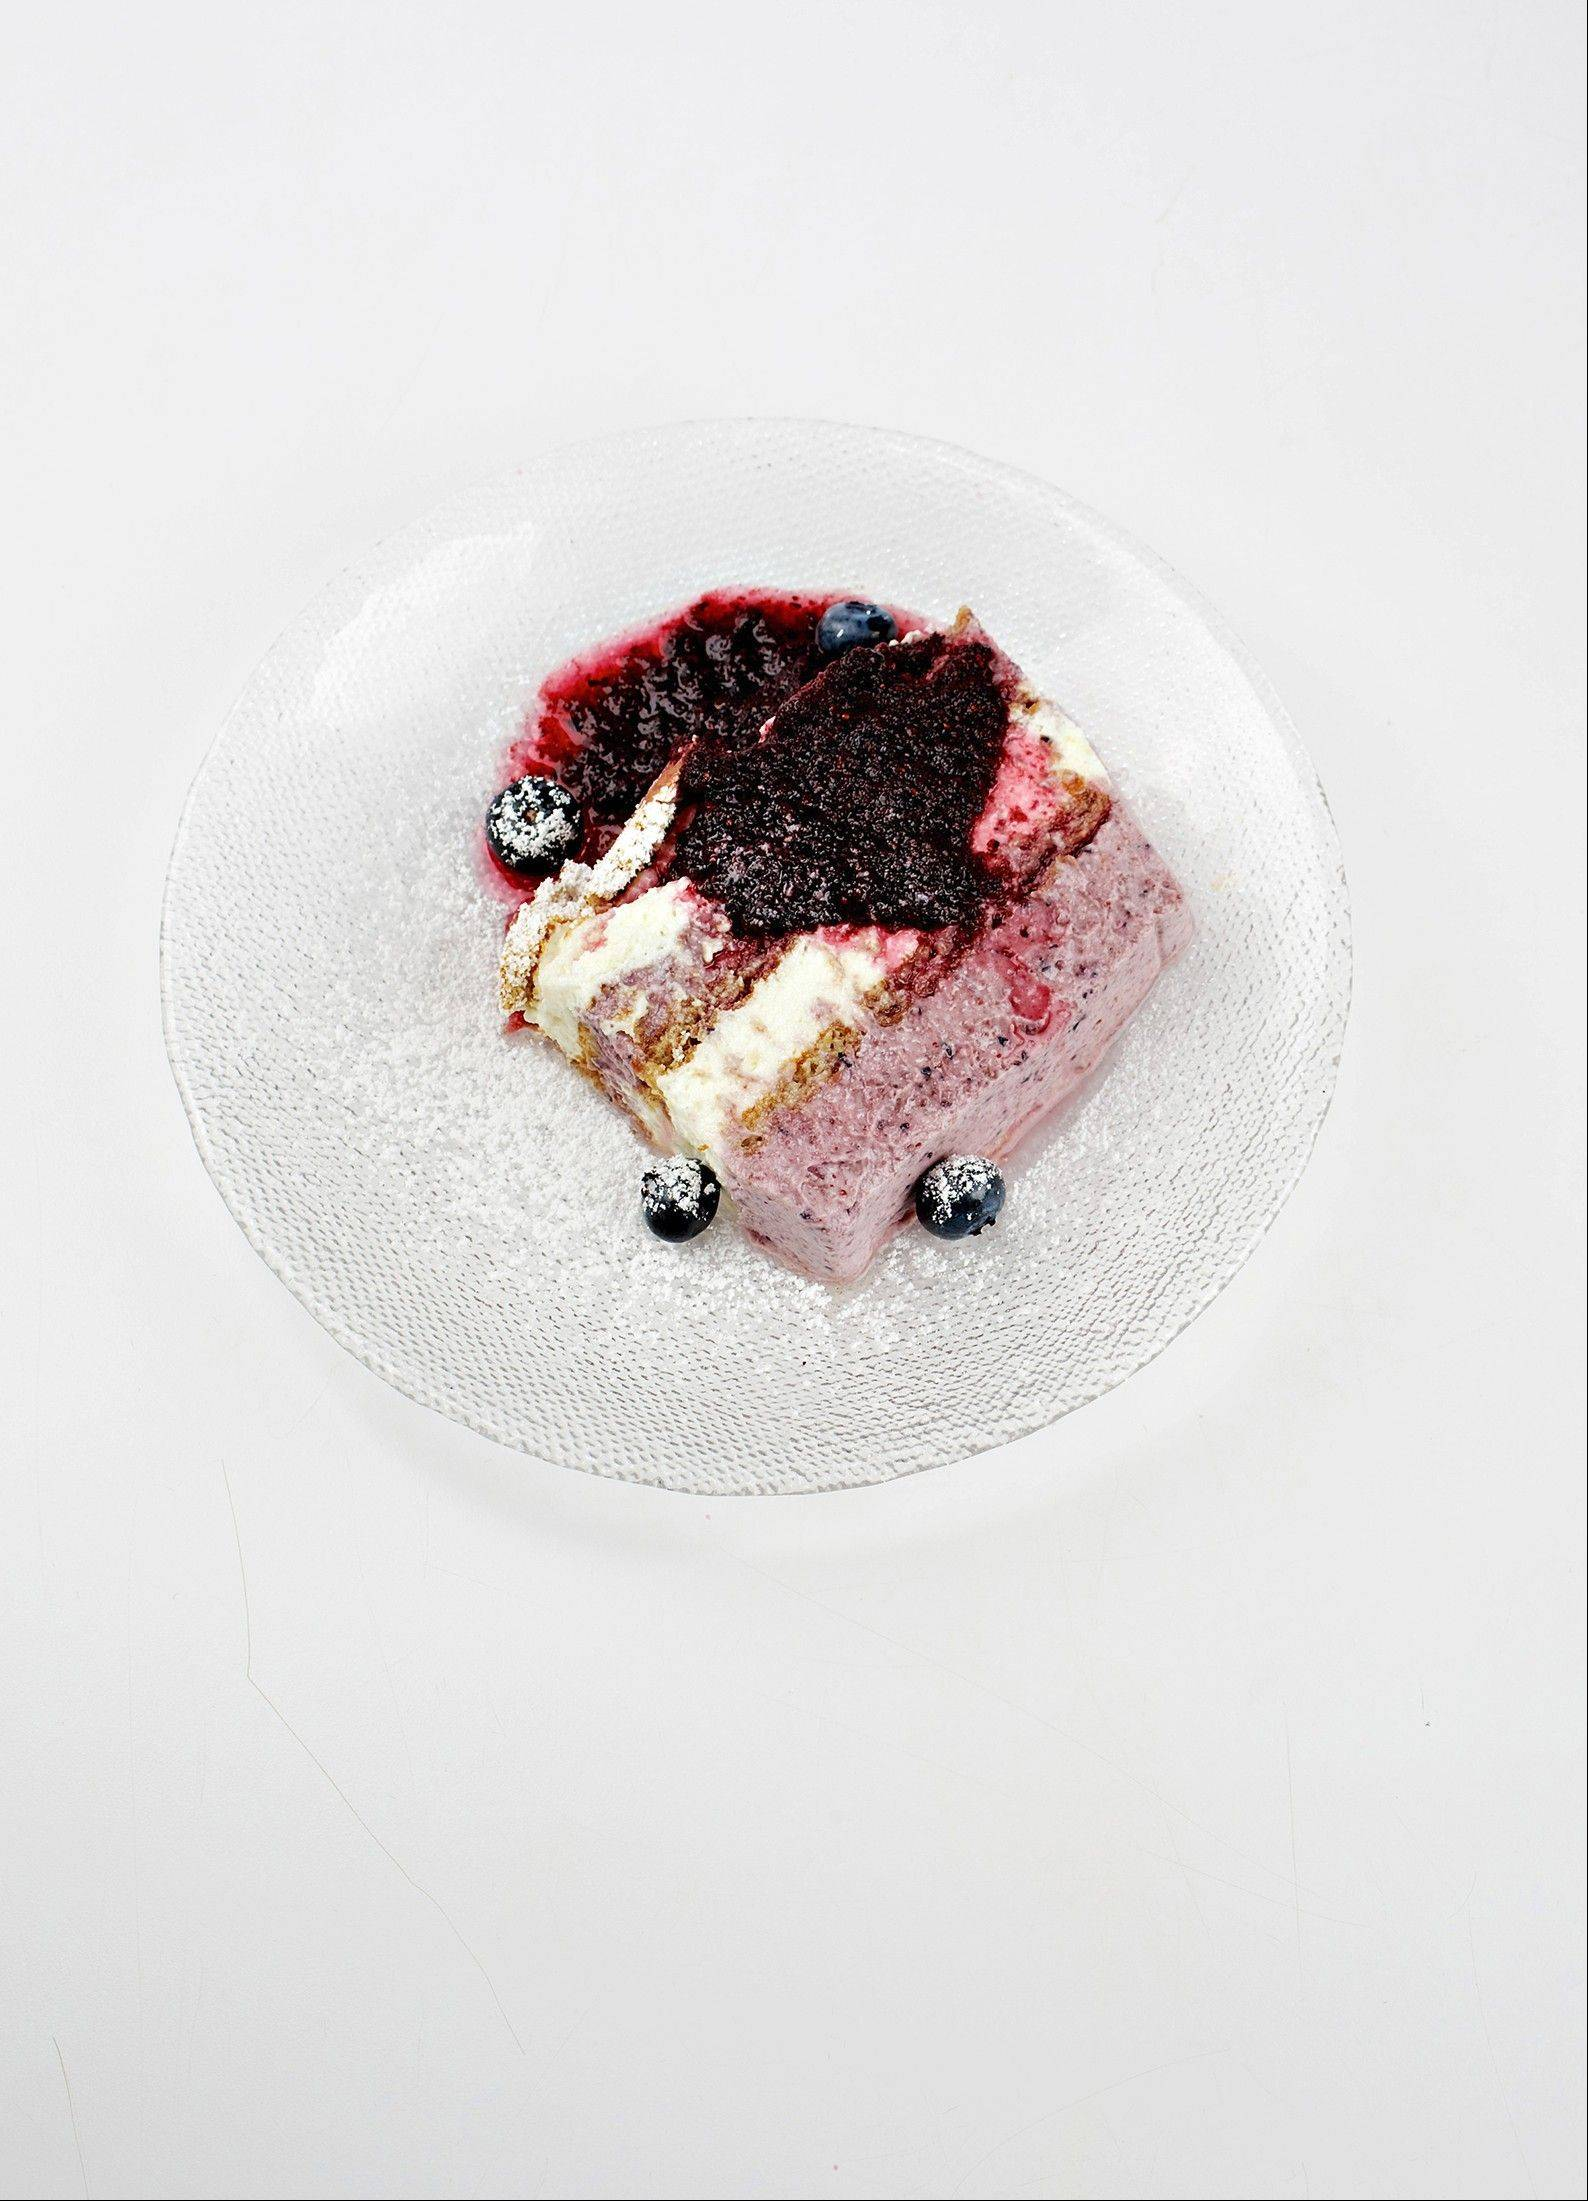 Blueberry and Lemon-Cream Icebox Cake contains fruity, creamy layers and is prepared sans oven.